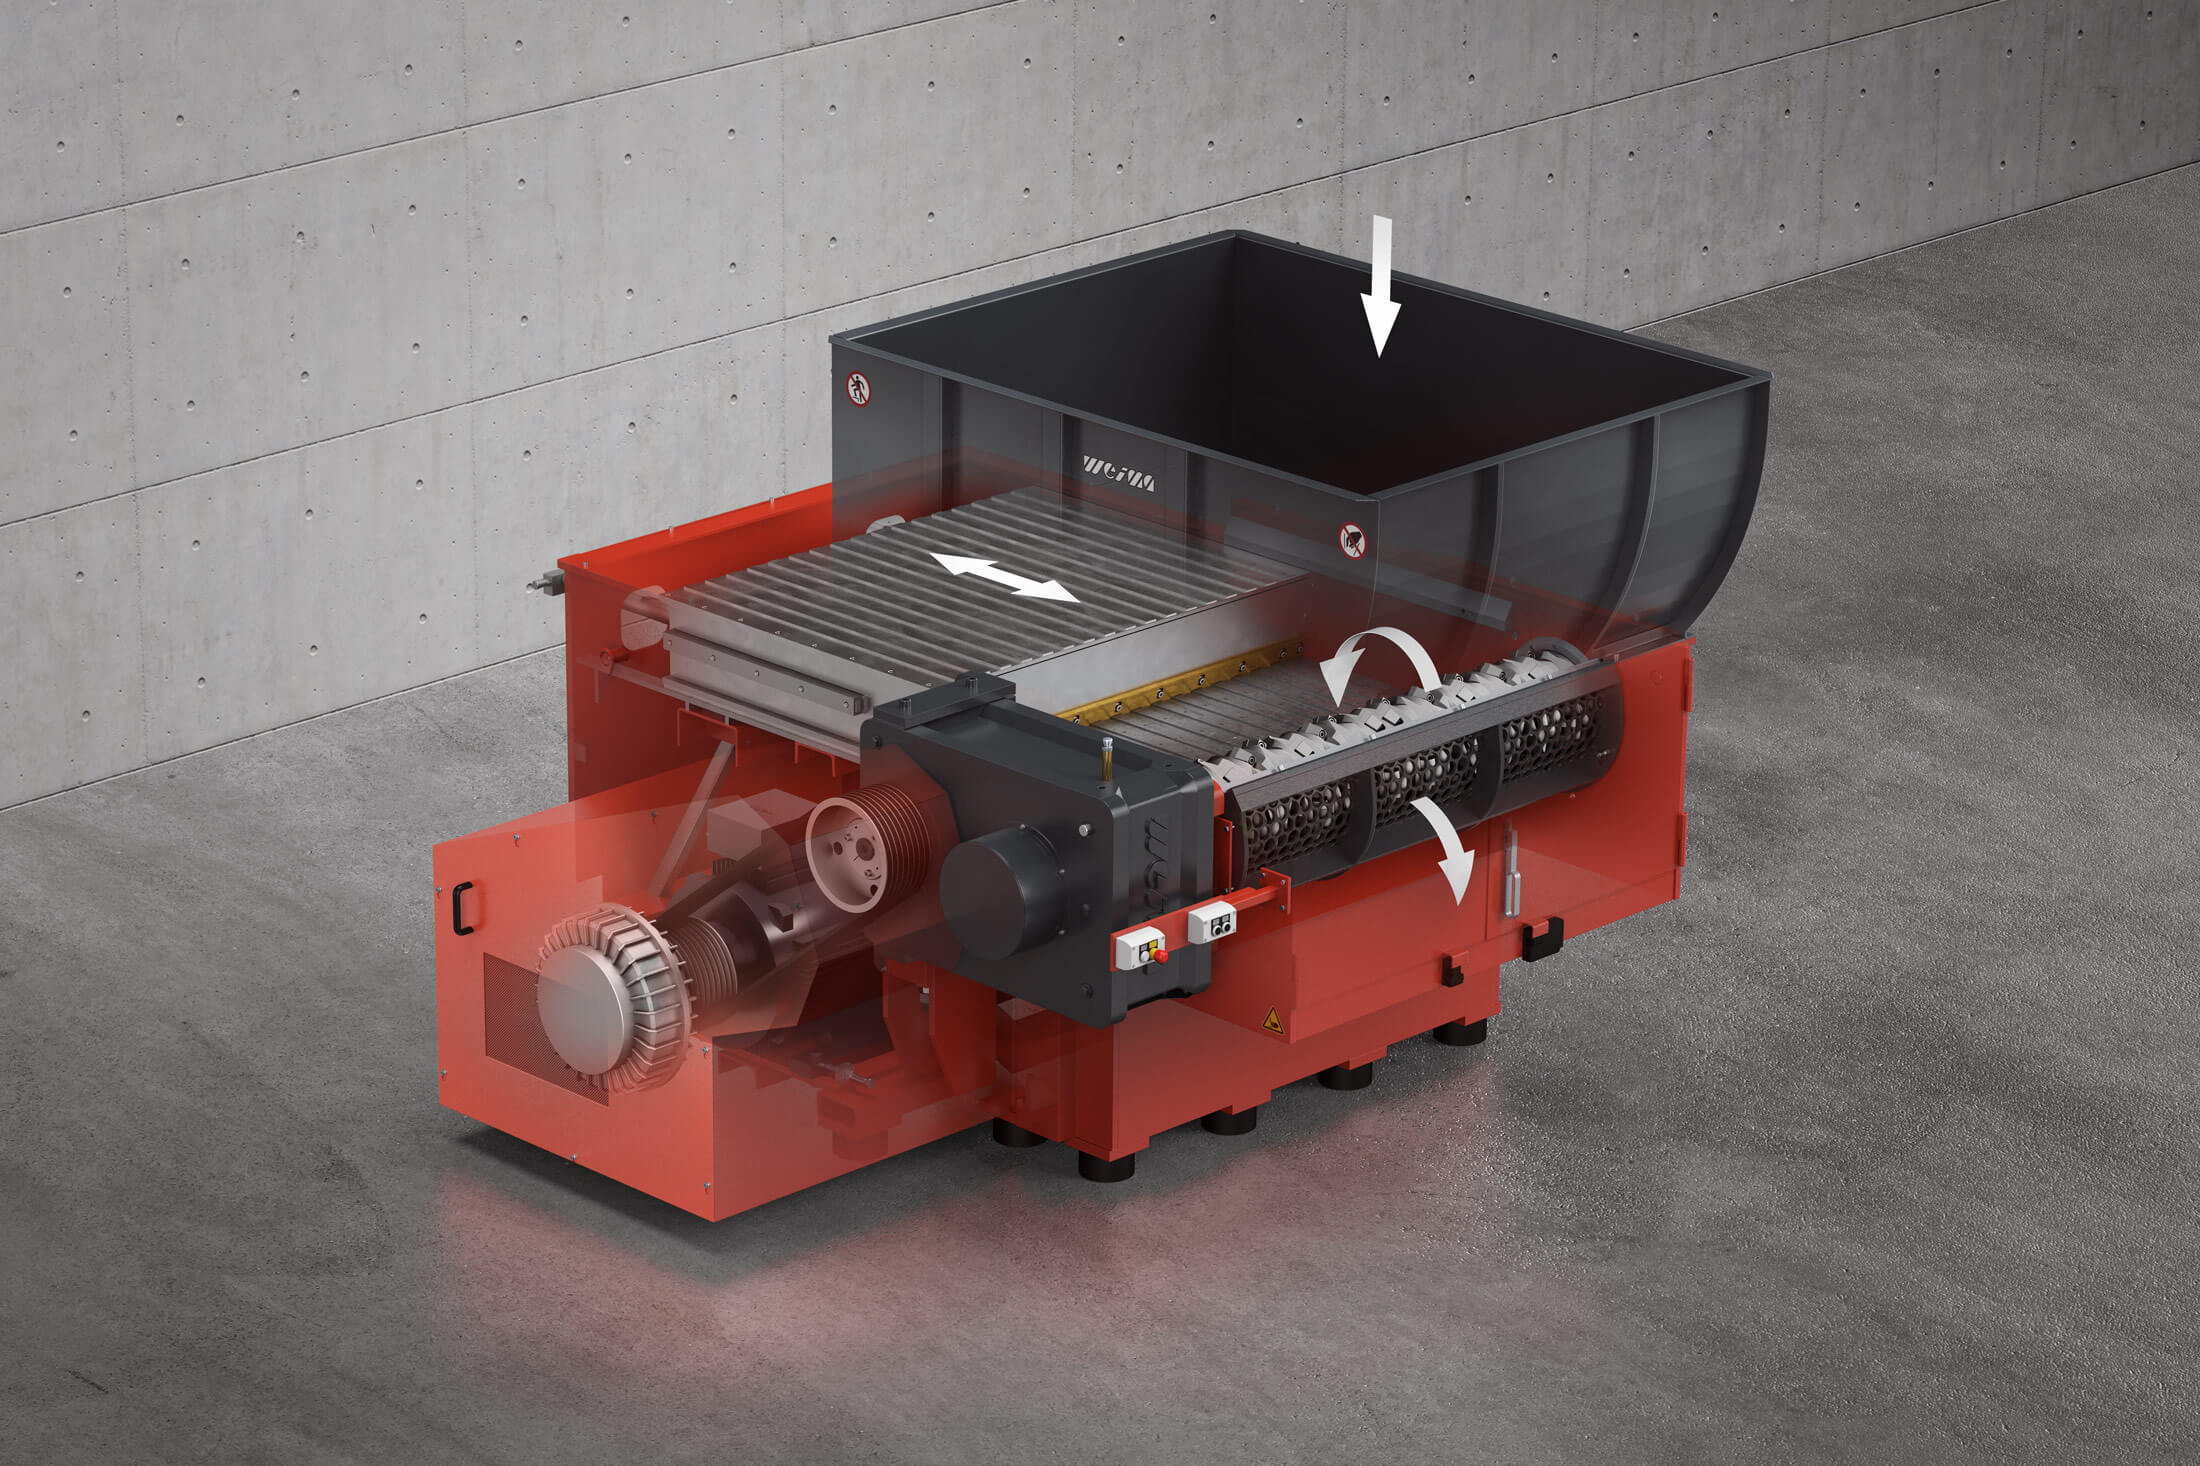 Rendered image of WEIMA WLK 1500 single-shaft shredder with X-Ray view of the machine components